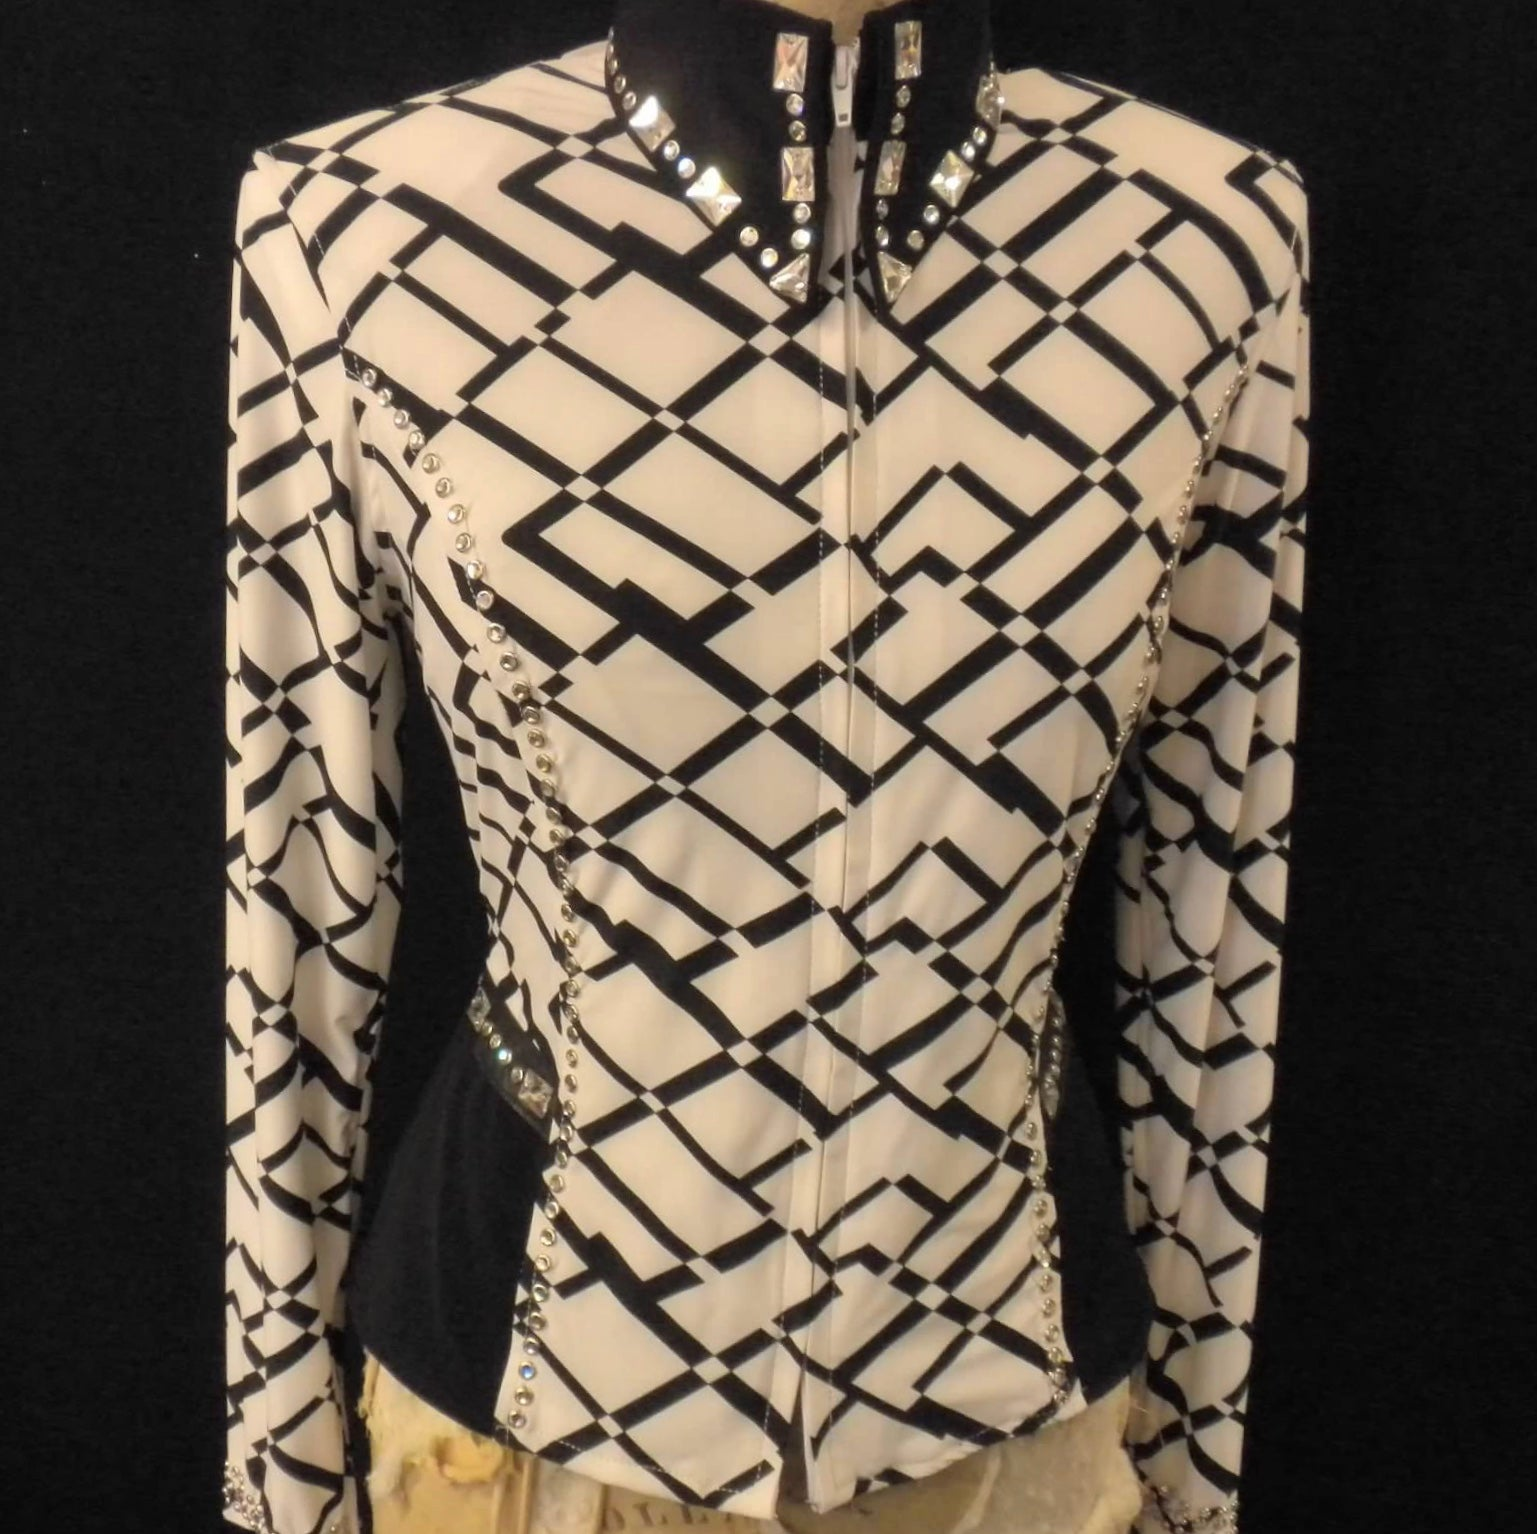 Lycra Fittted Shirt with Geometric Design